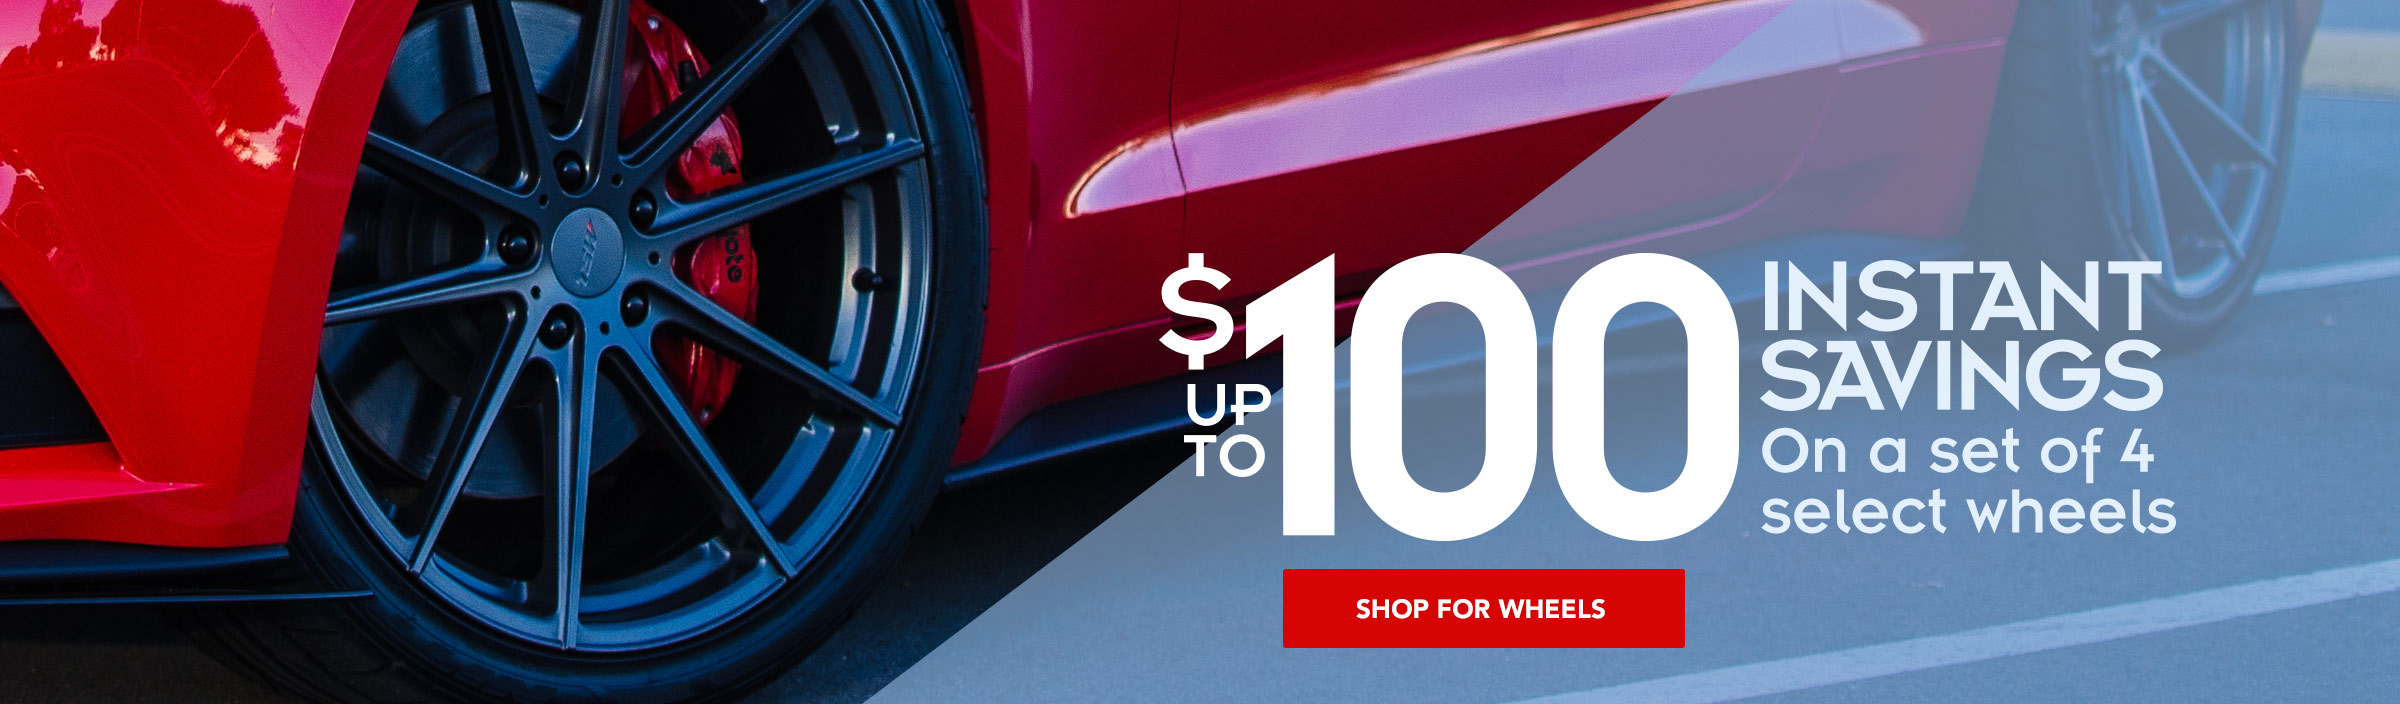 Discount Tire Closest To Me >> Discount Tire Direct Tires And Wheels For Sale Online